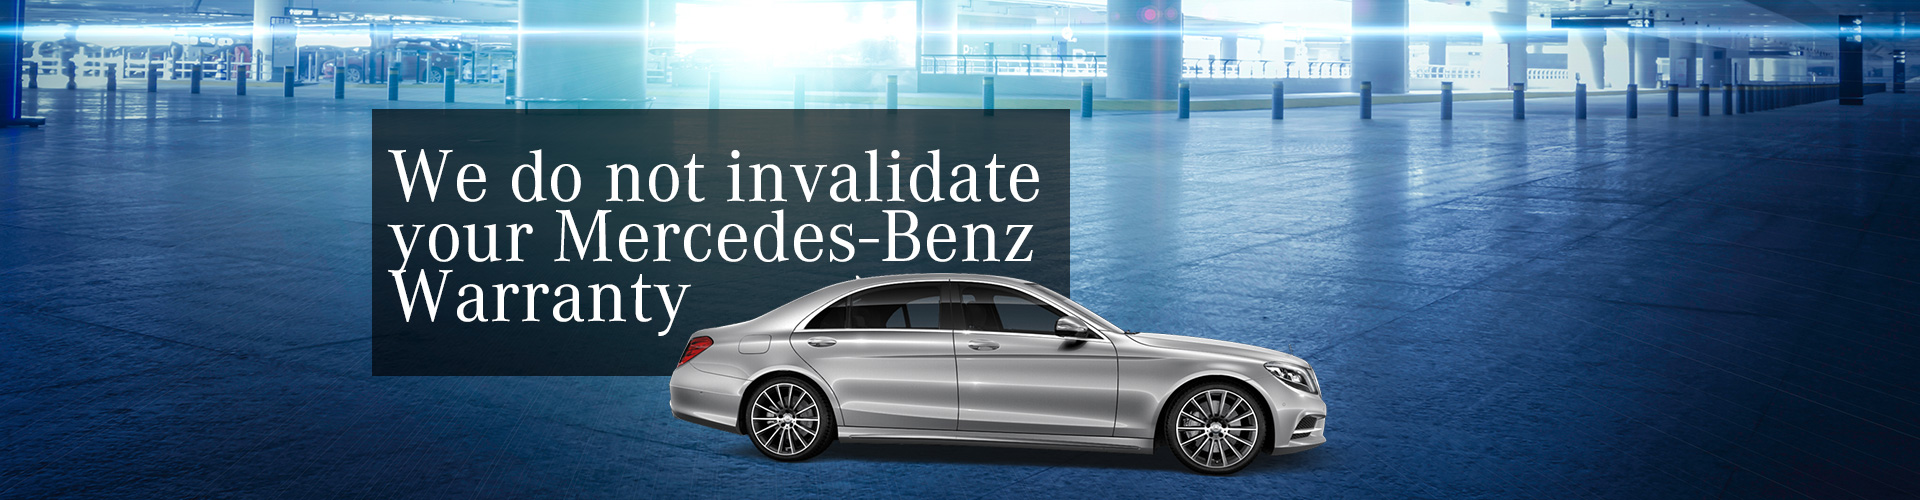 MB Nottingham will not invalidate your Mercedes Benz Warranty